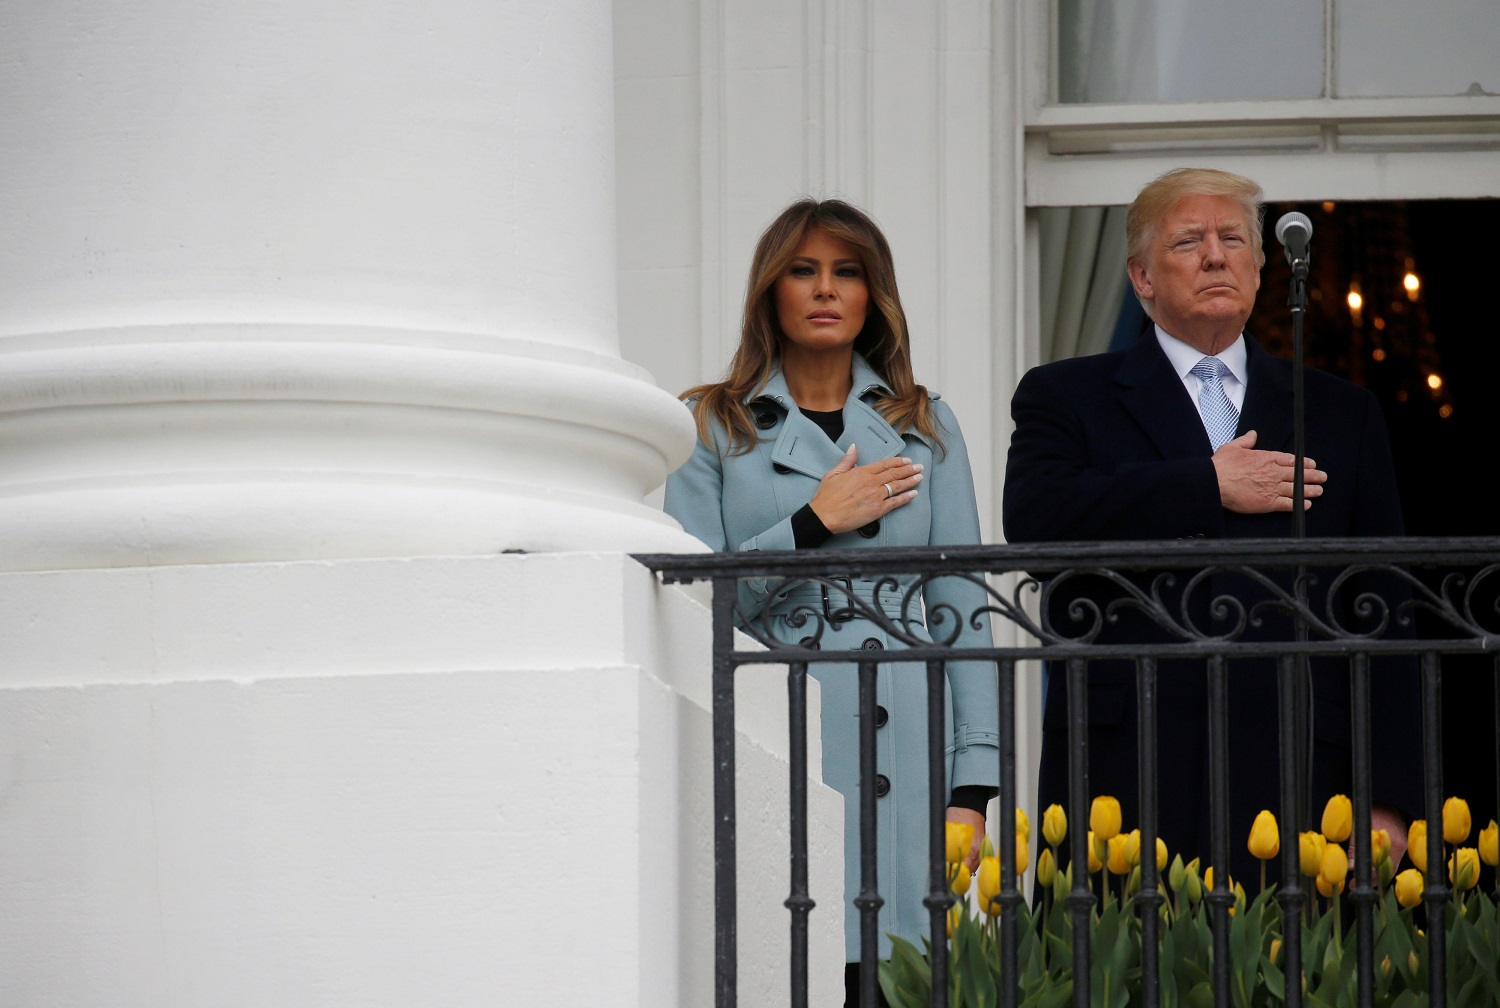 U.S. President Donald Trump and first lady Melania Trump listen to the national anthem during the annual White House Easter Egg Roll on the South Lawn of the White House in Washington, April 2, 2018. REUTERS/Leah Millis